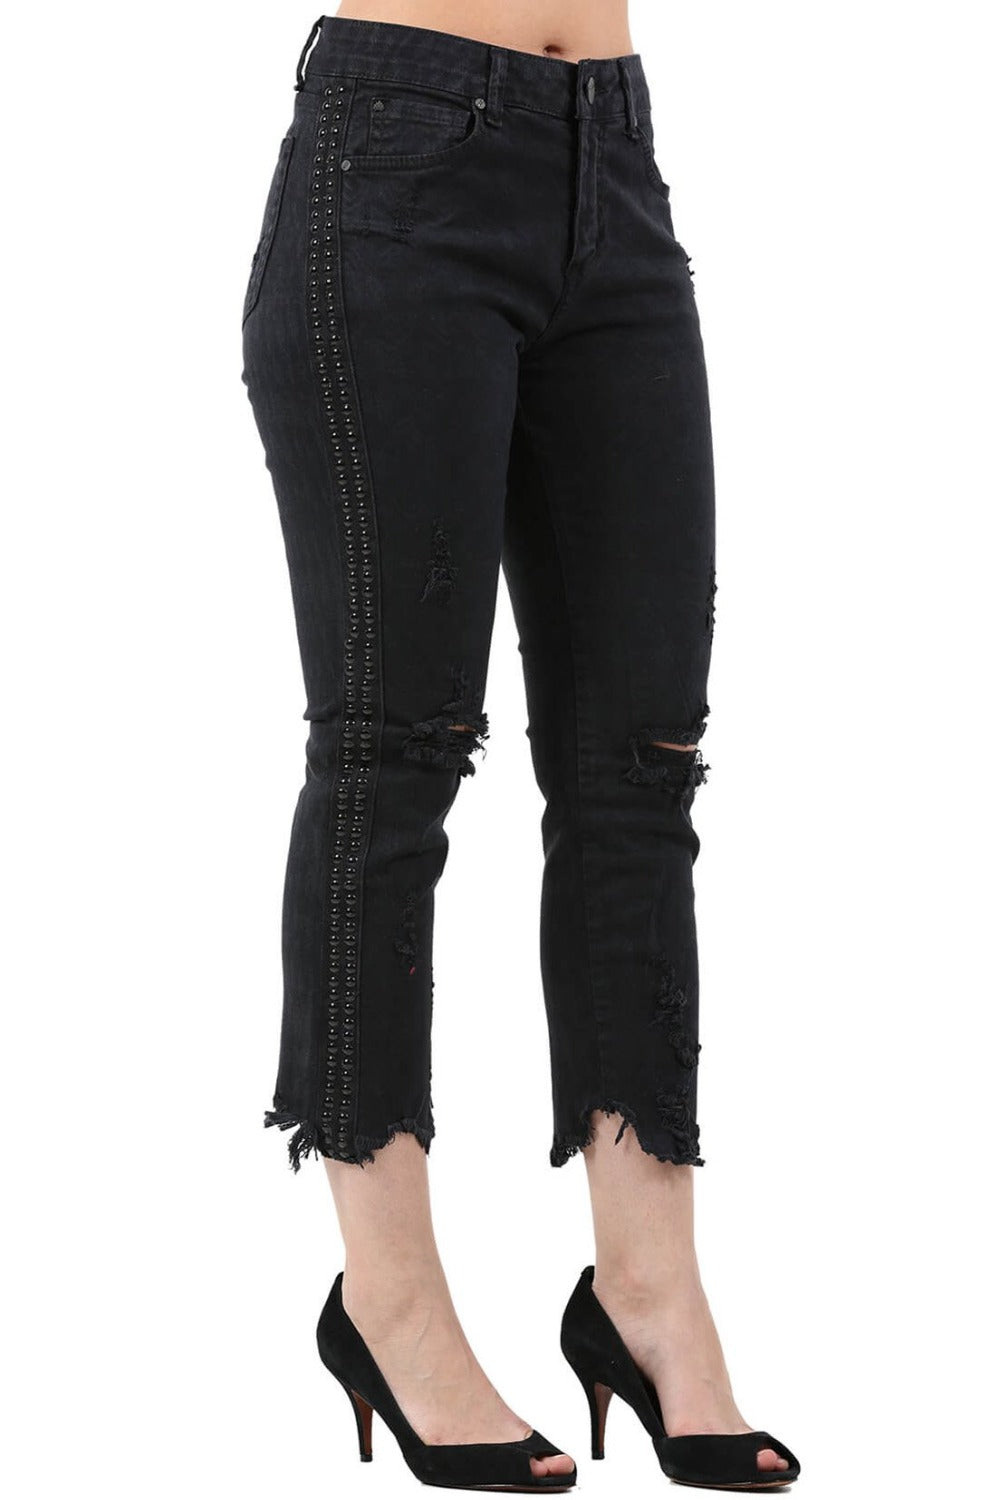 CALÇA ITS&CO CROP MIX SKINNY